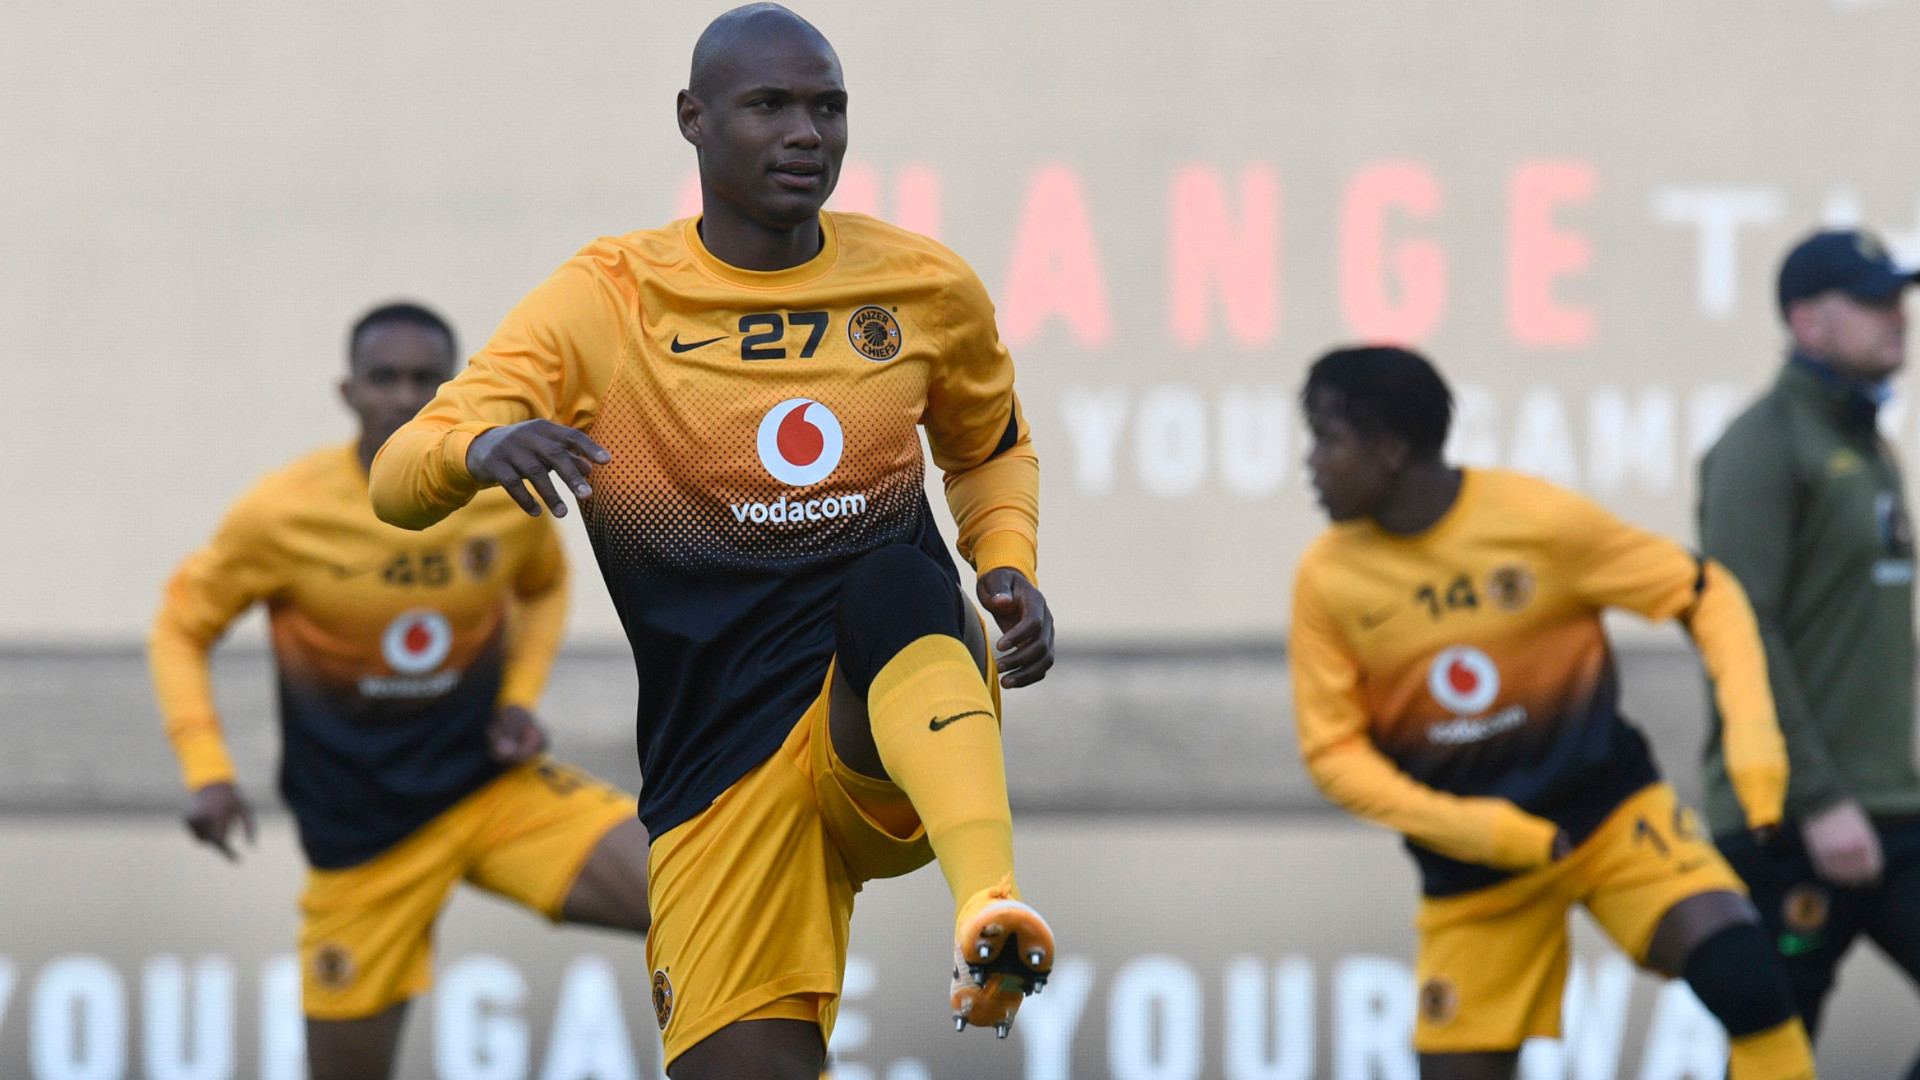 Kaizer Chiefs are conceding because Ngcobo's on the bench – Ngubane